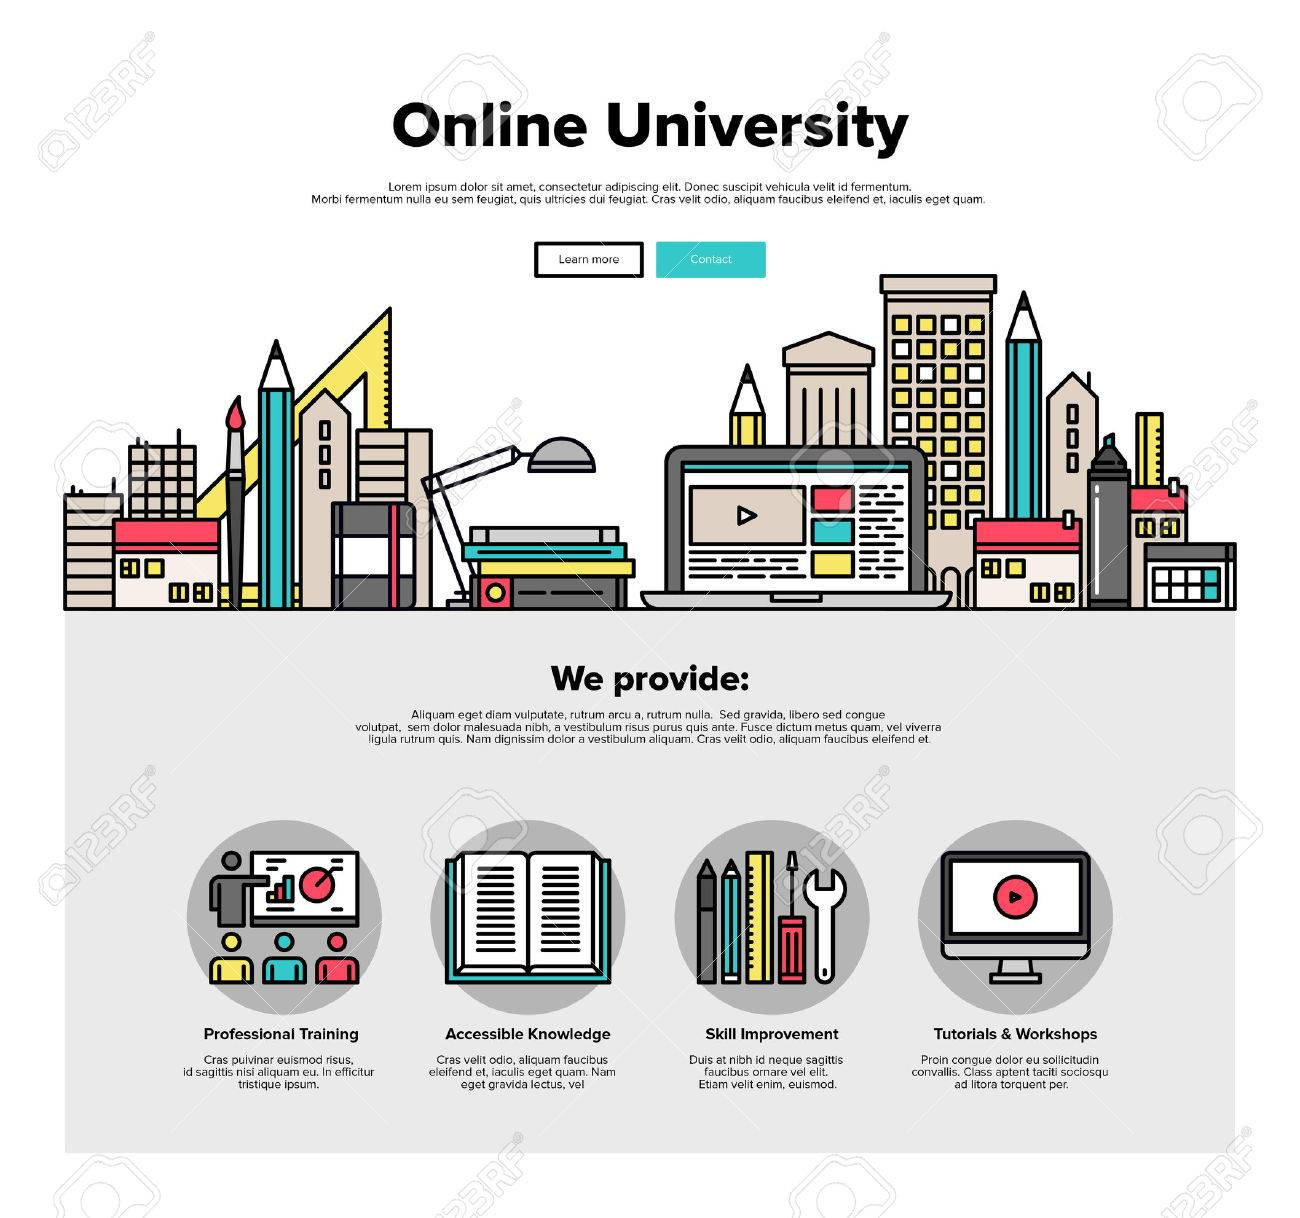 One page web design template with thin line icons of internet campus workshop learning, online university space for coworking education. Flat design graphic hero image concept, website elements layout. Stock Vector - 46612085